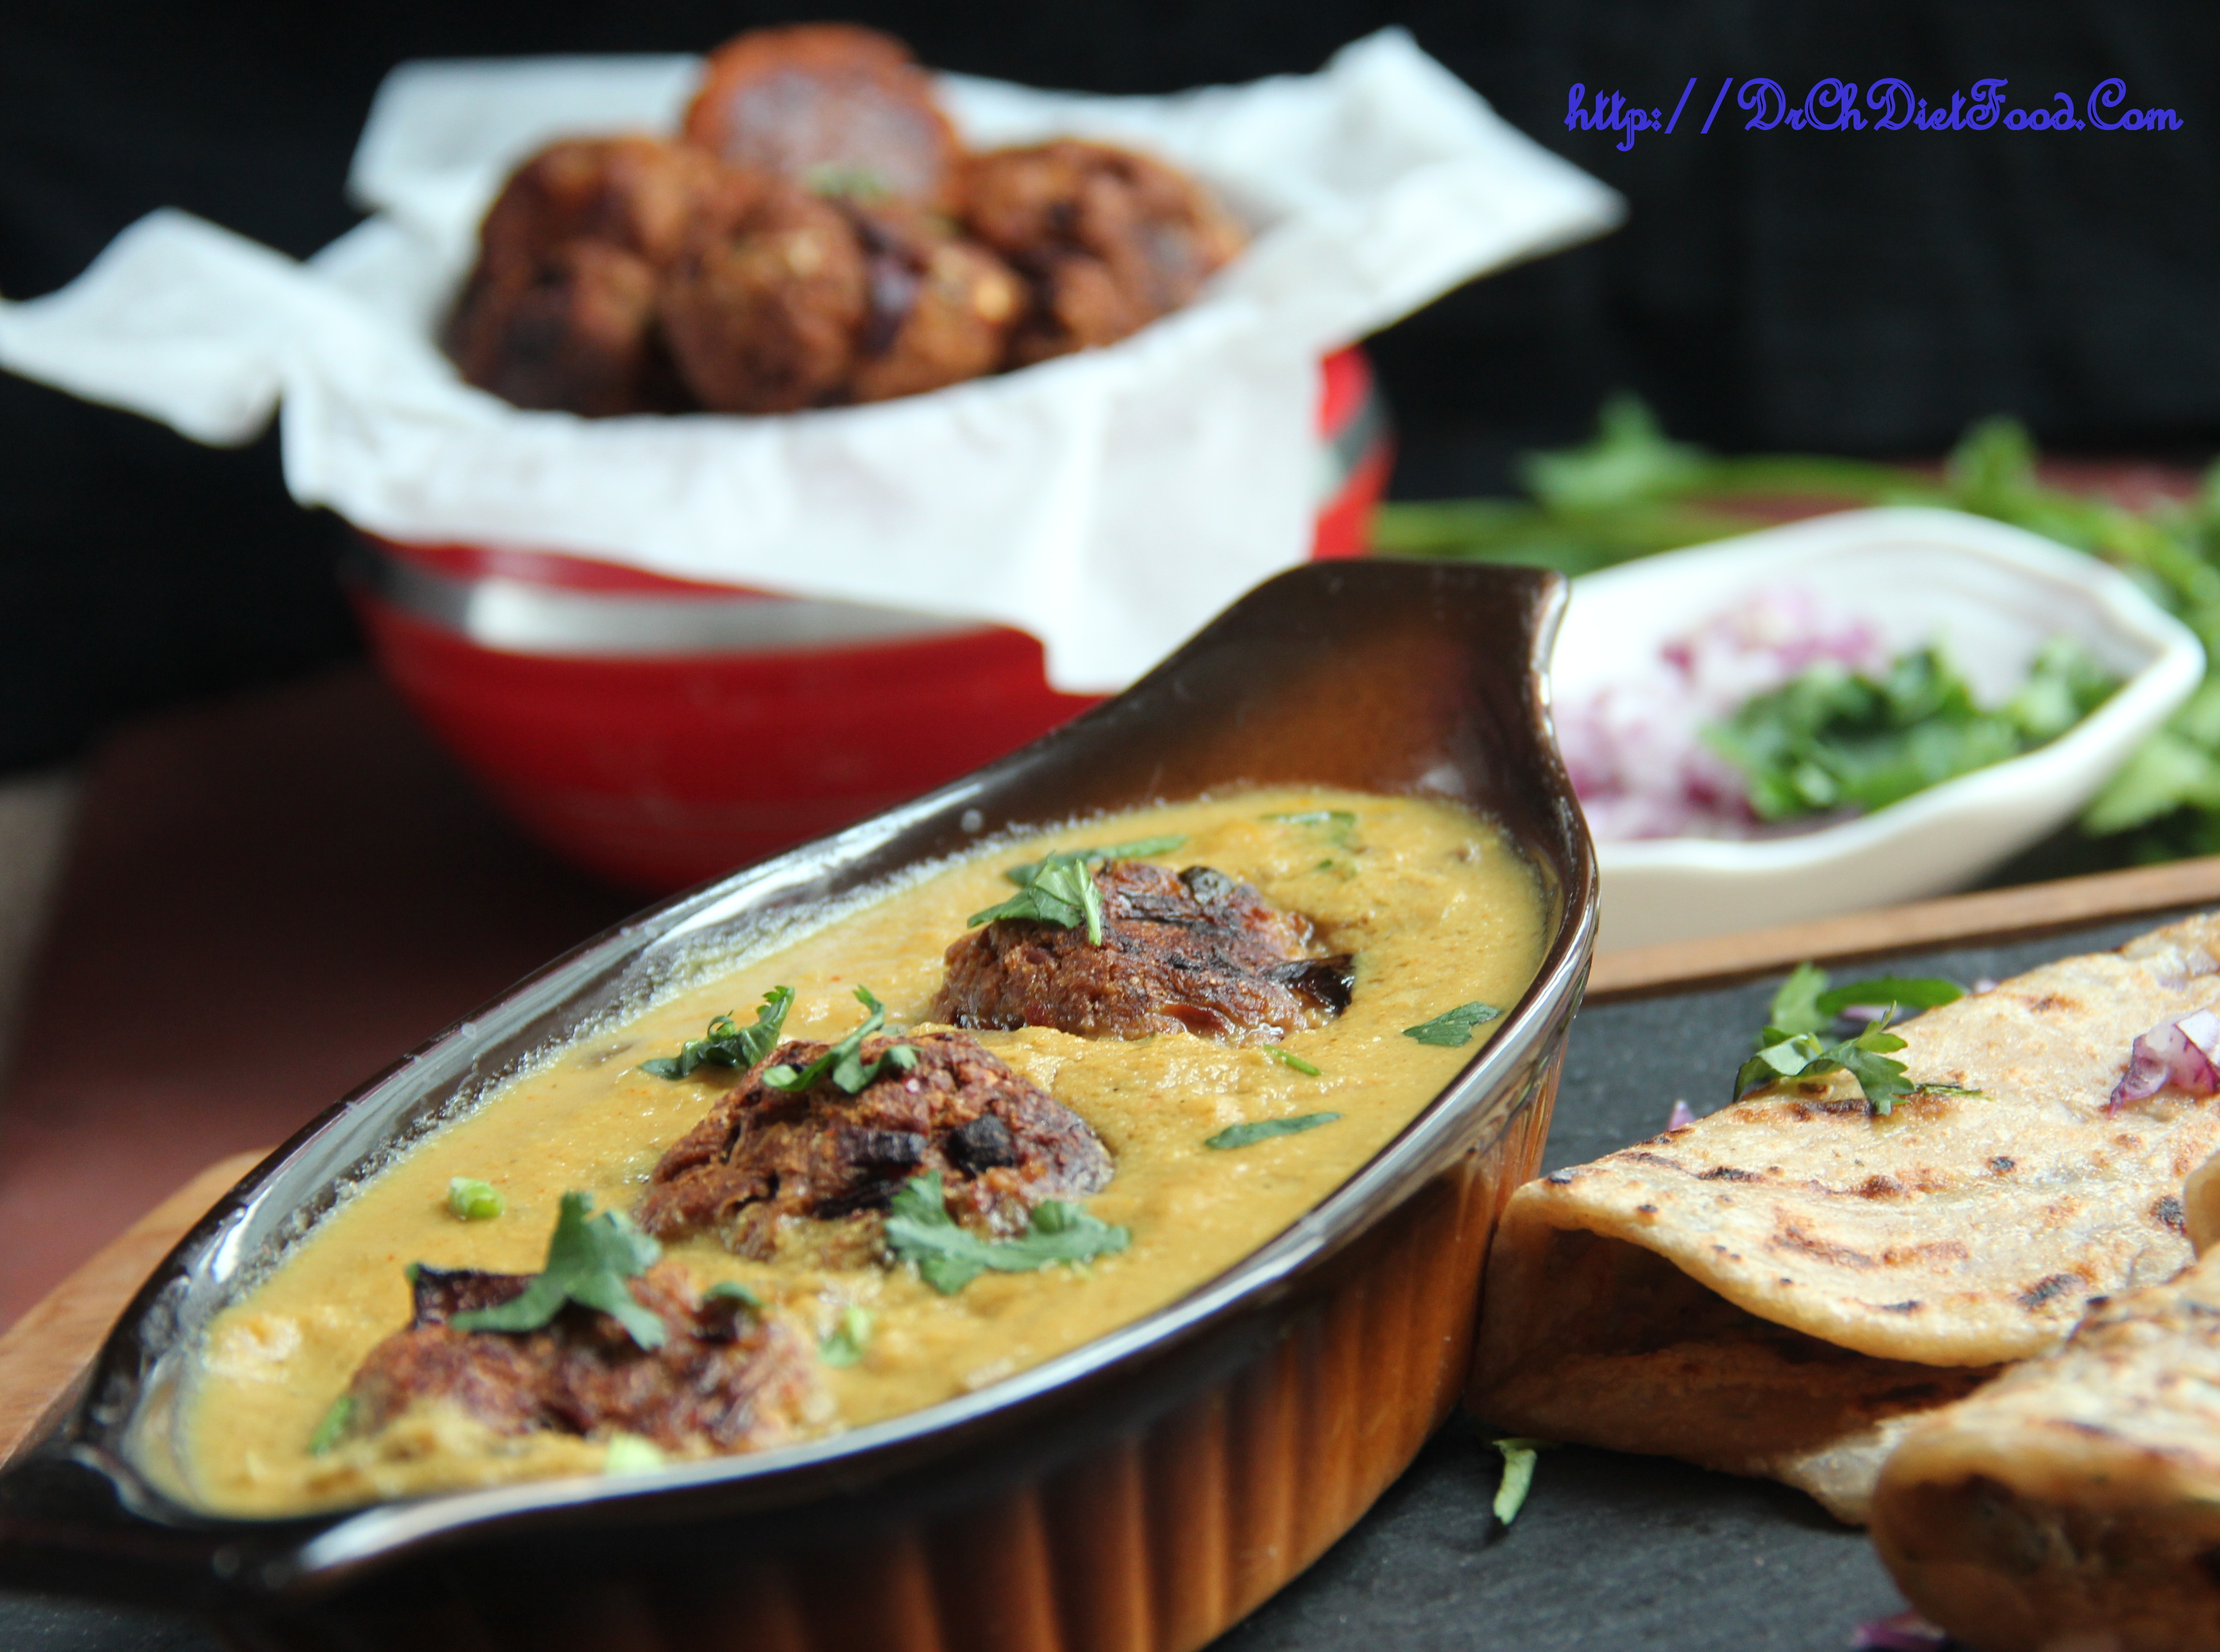 Baked Bread kofta in dudi gravy (Cream free)